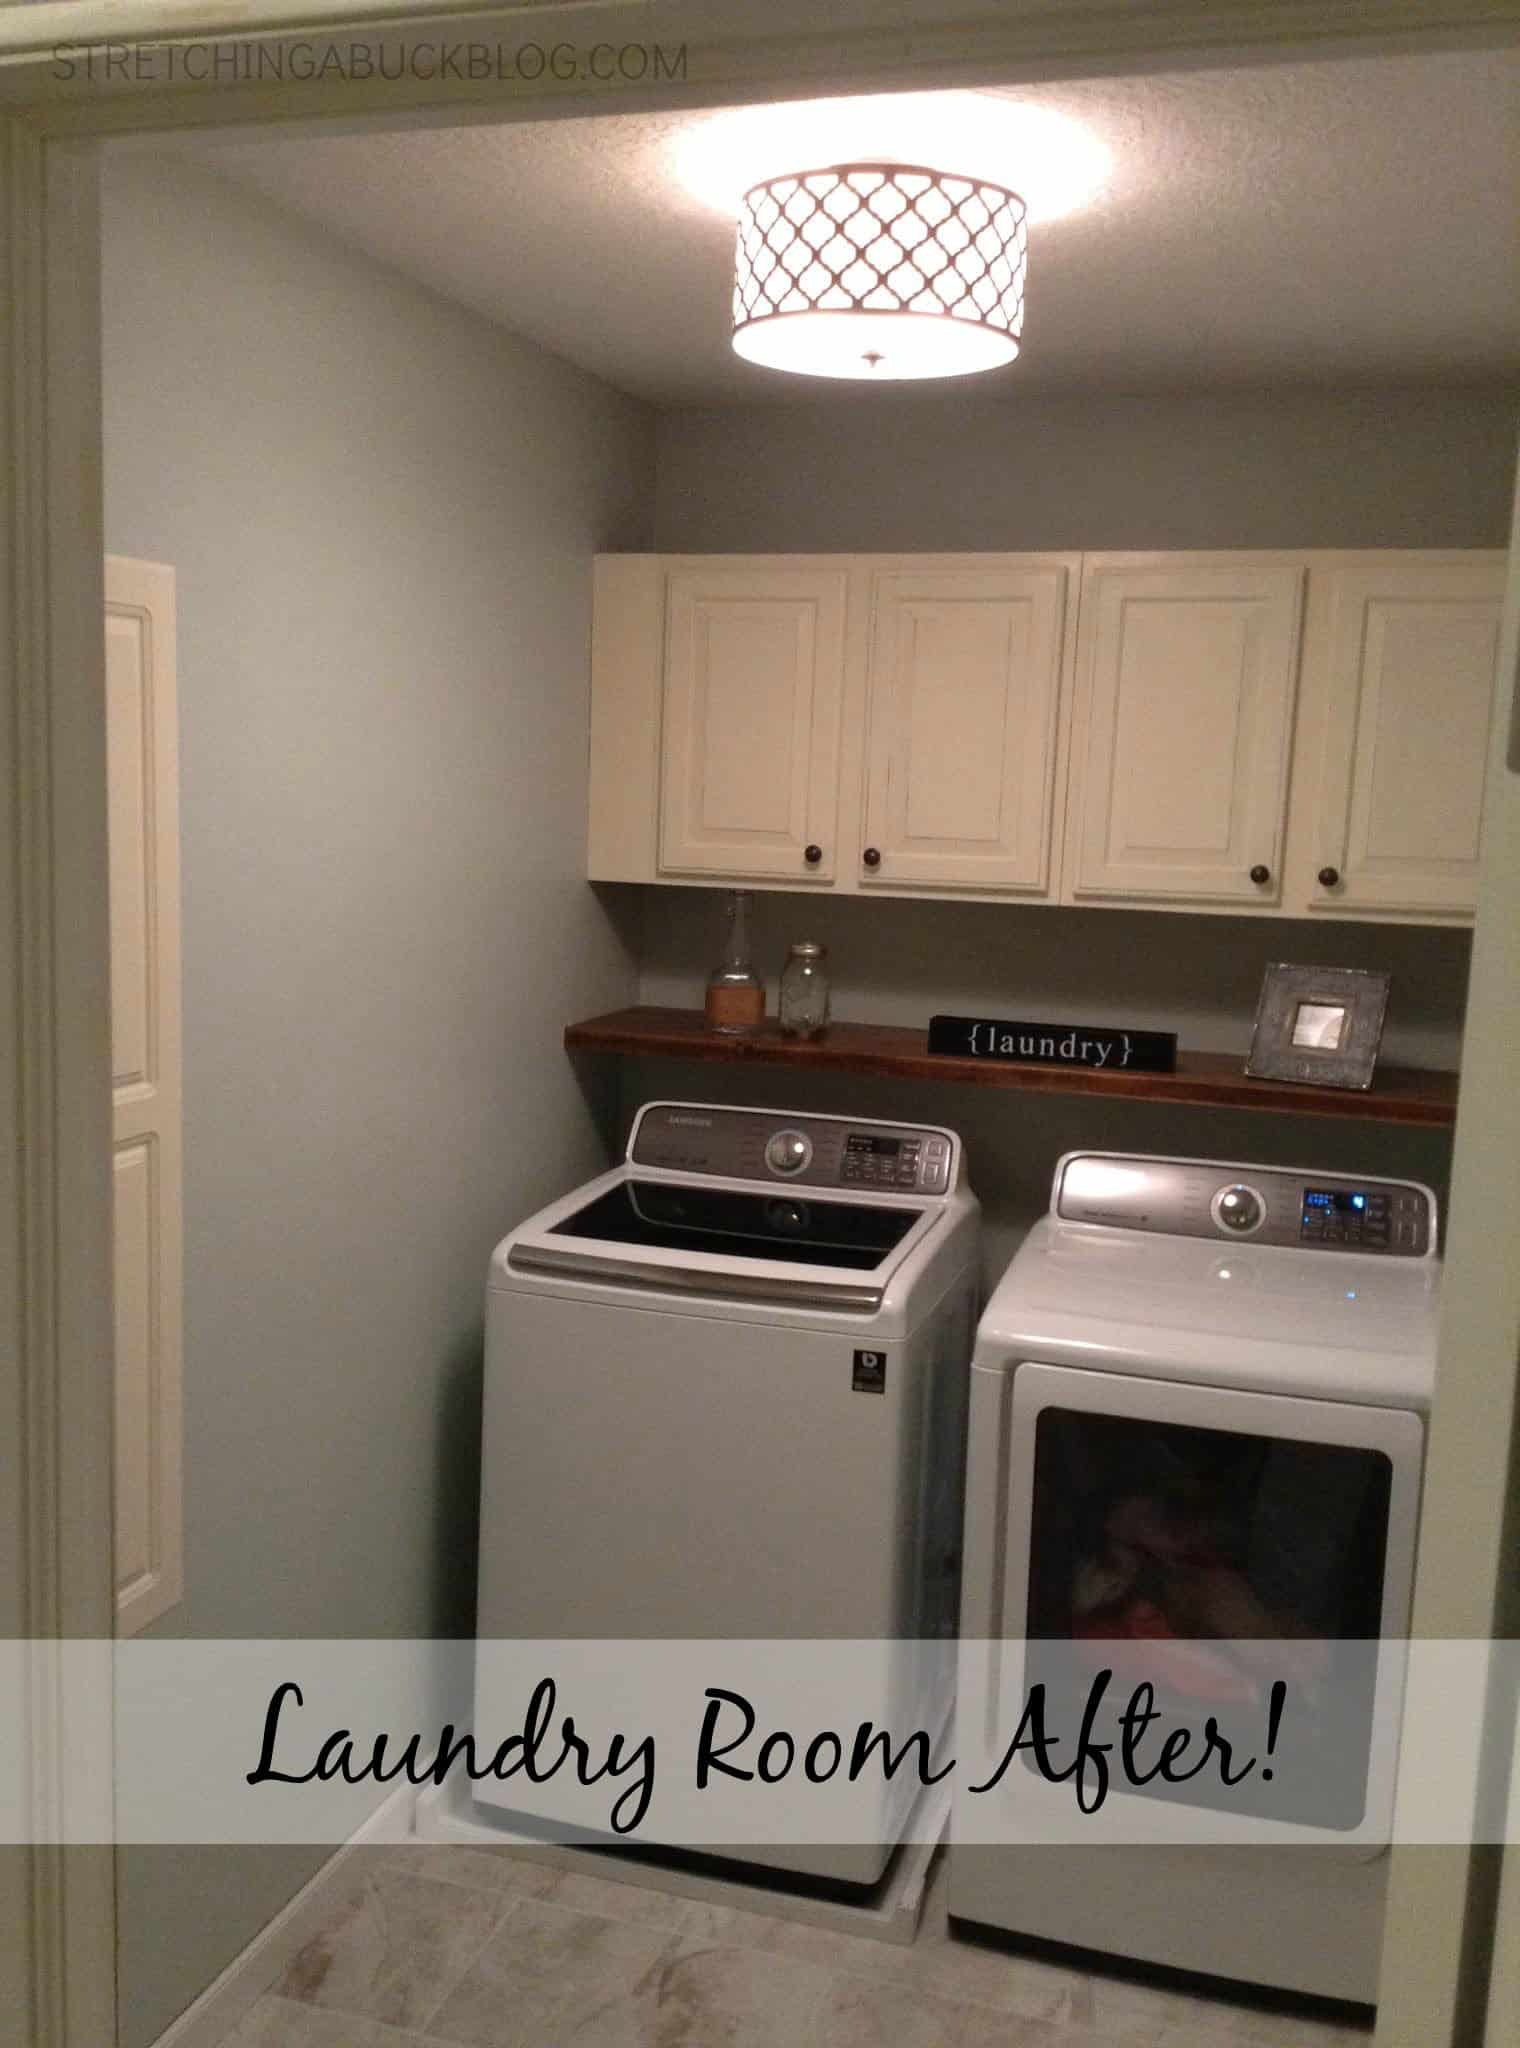 Complete laundry room makeover